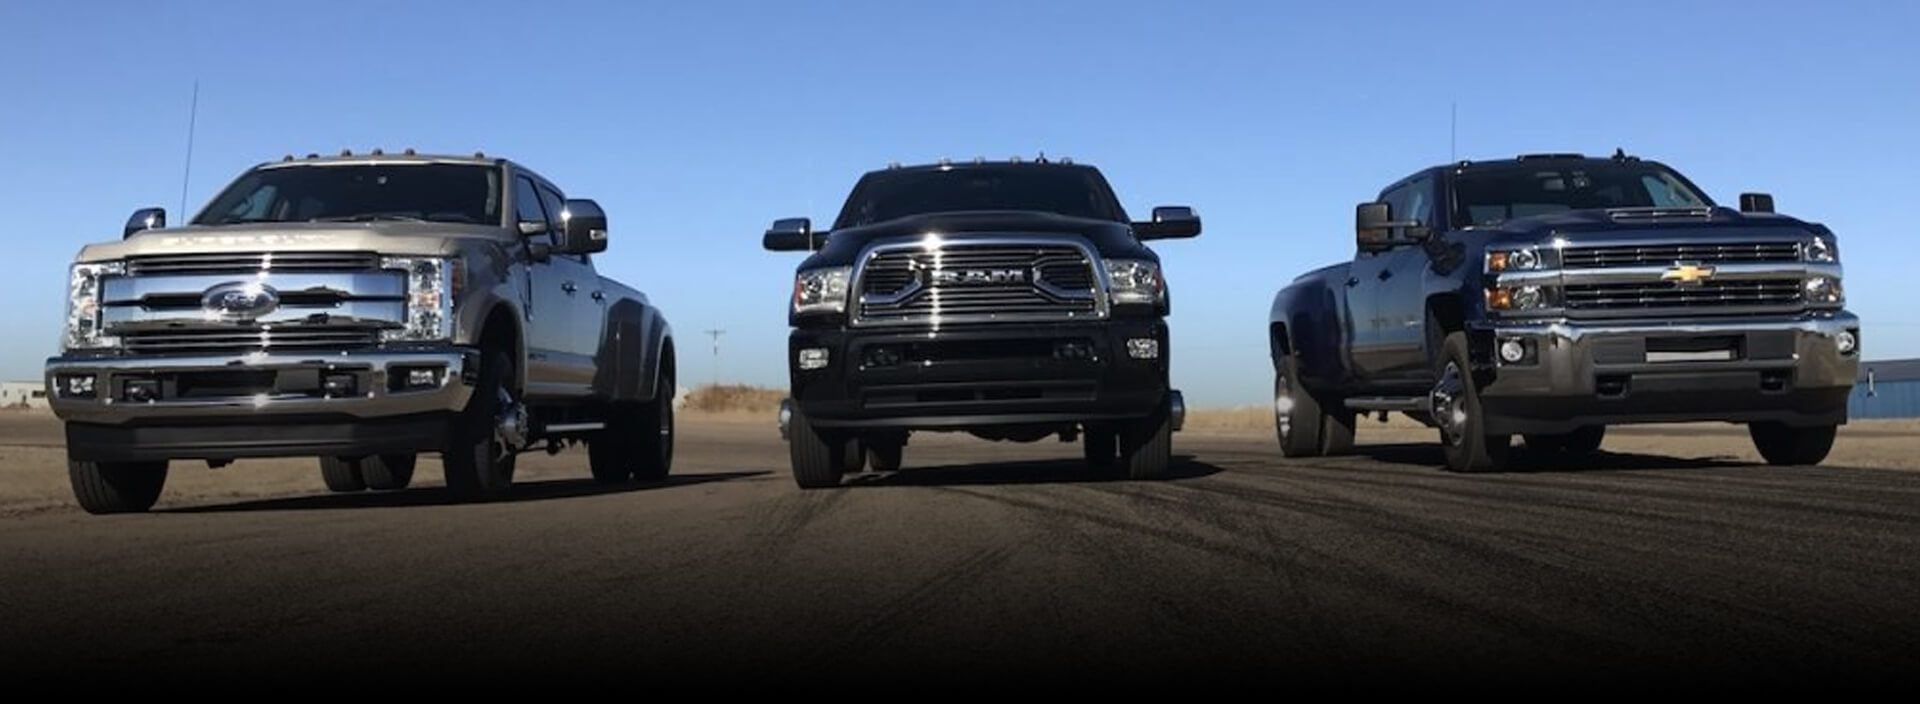 The Biggest Diesel Truck Dealer In States Ford Chevy Dodge - Ford vs chevy us map